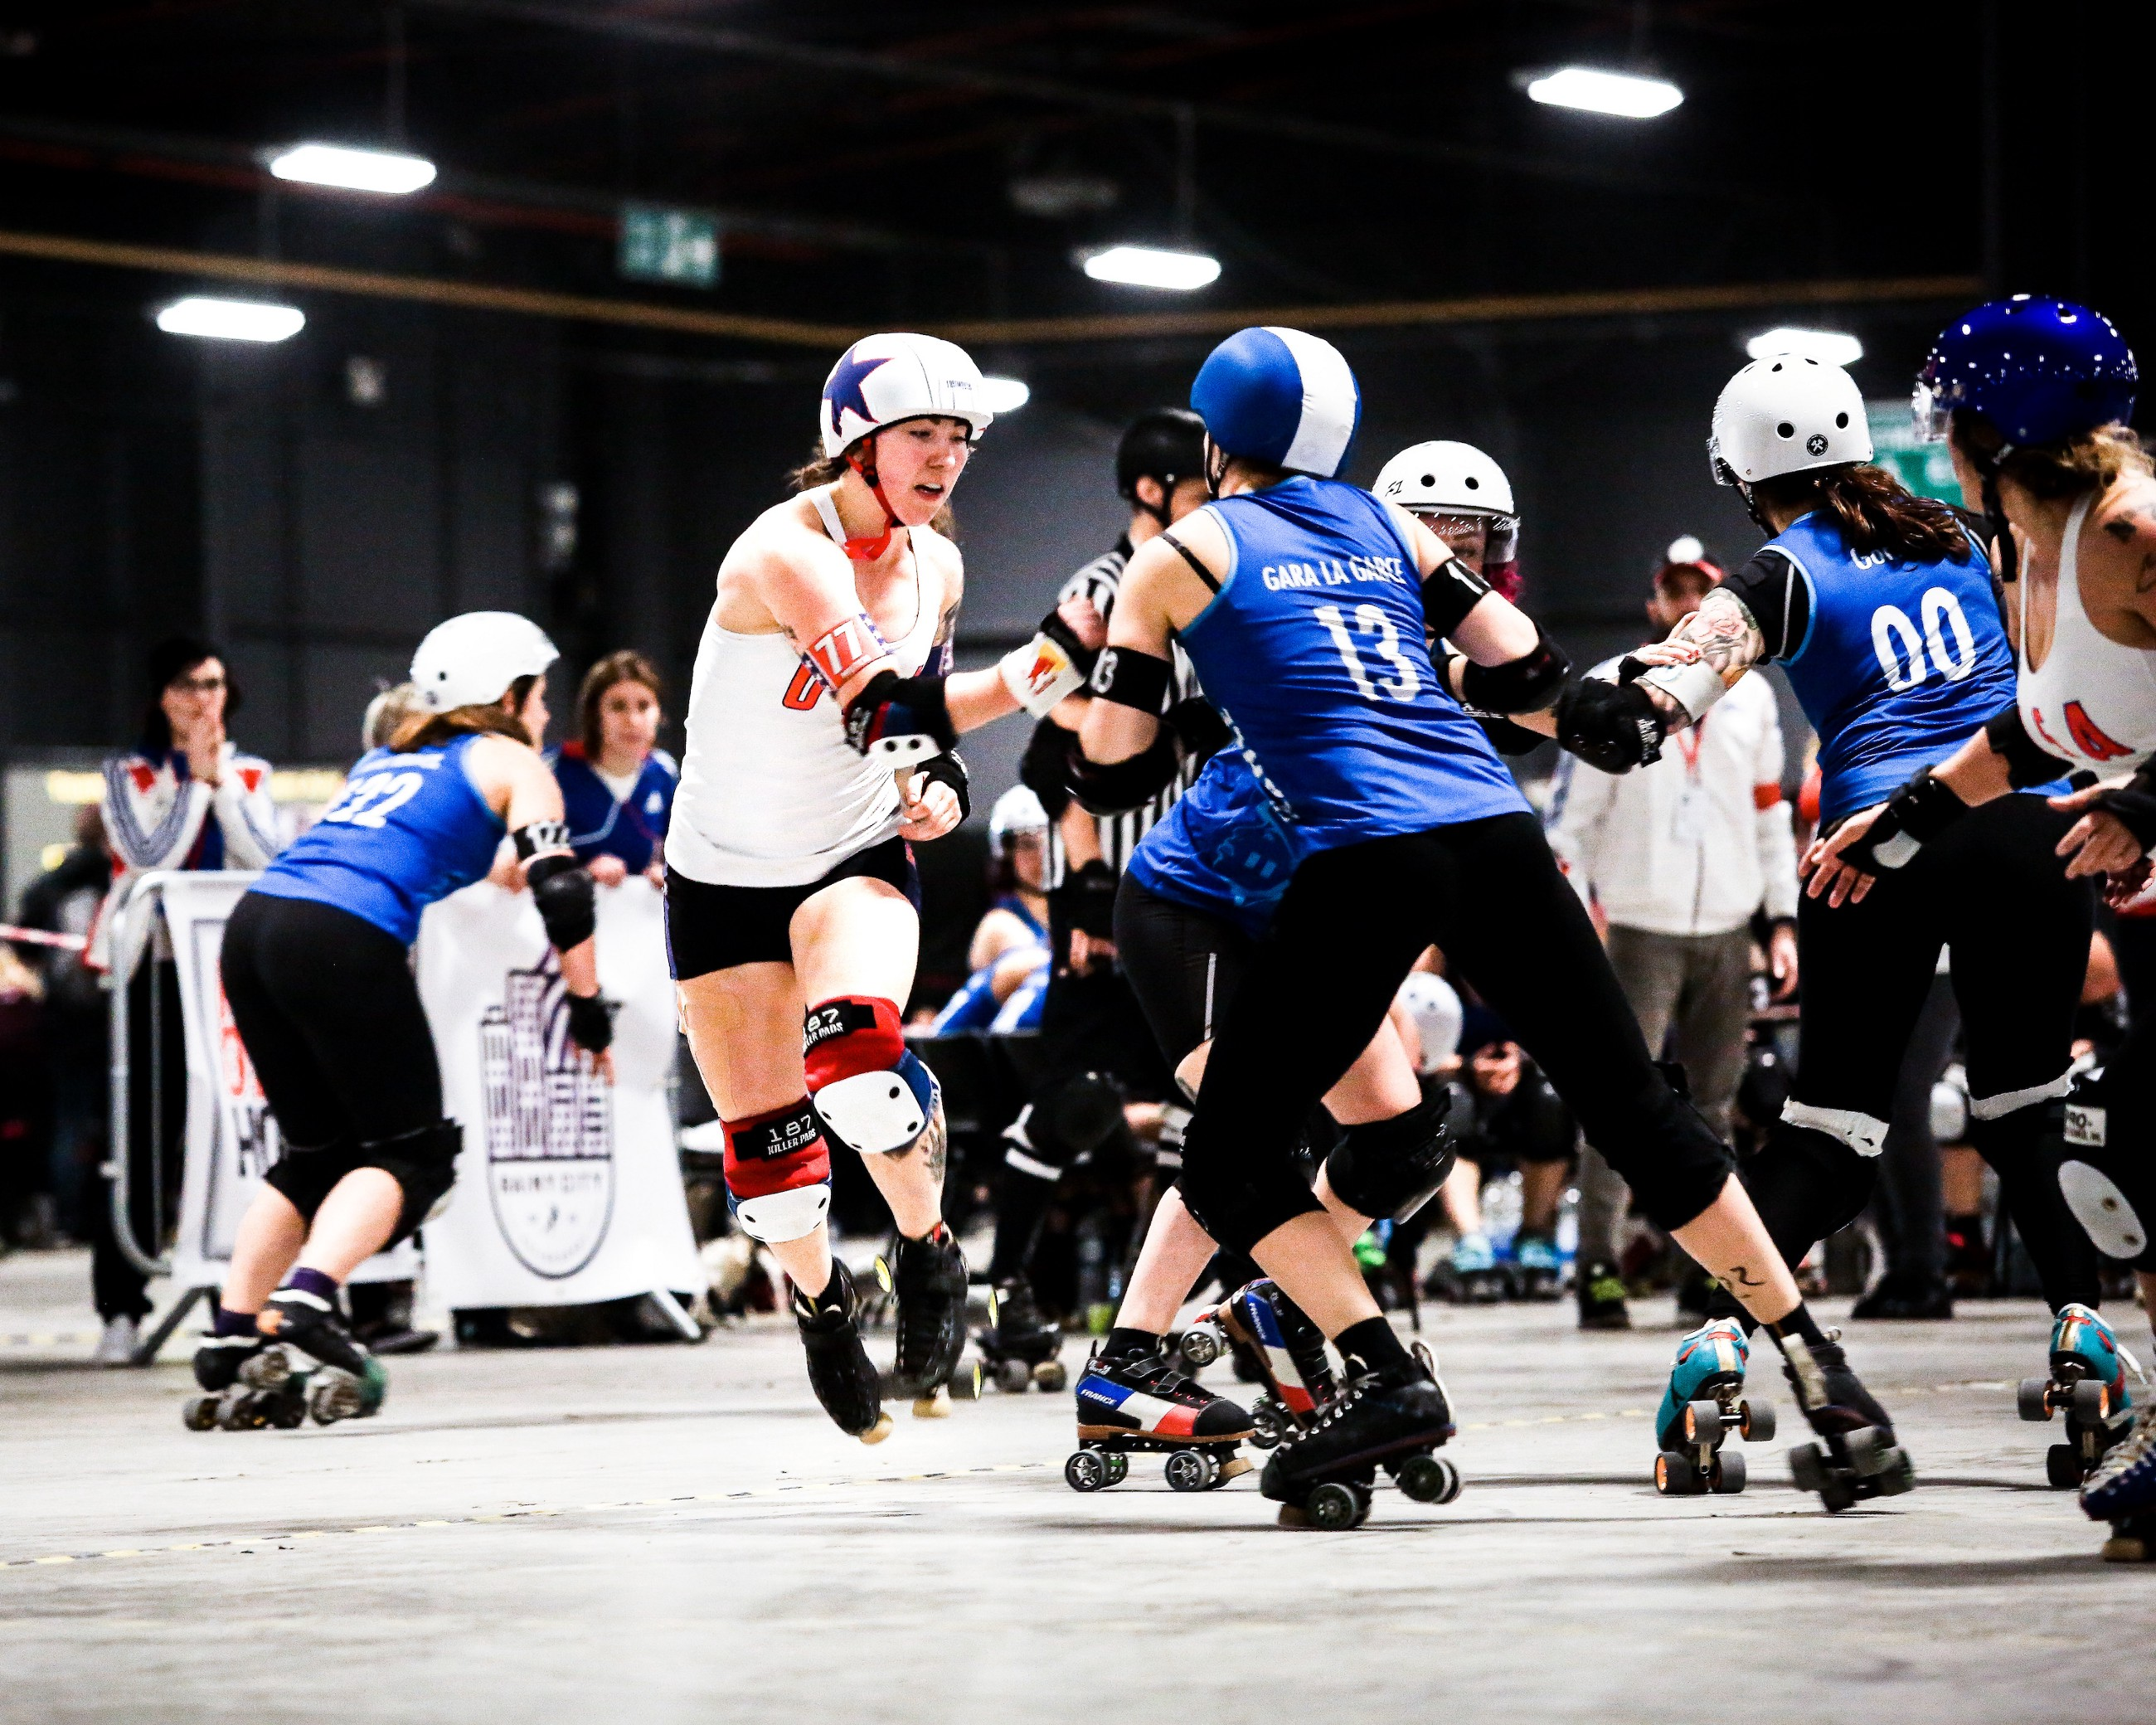 2018 Roller Derby World Cup Scores – Frogmouth – Medium bfe20ad59